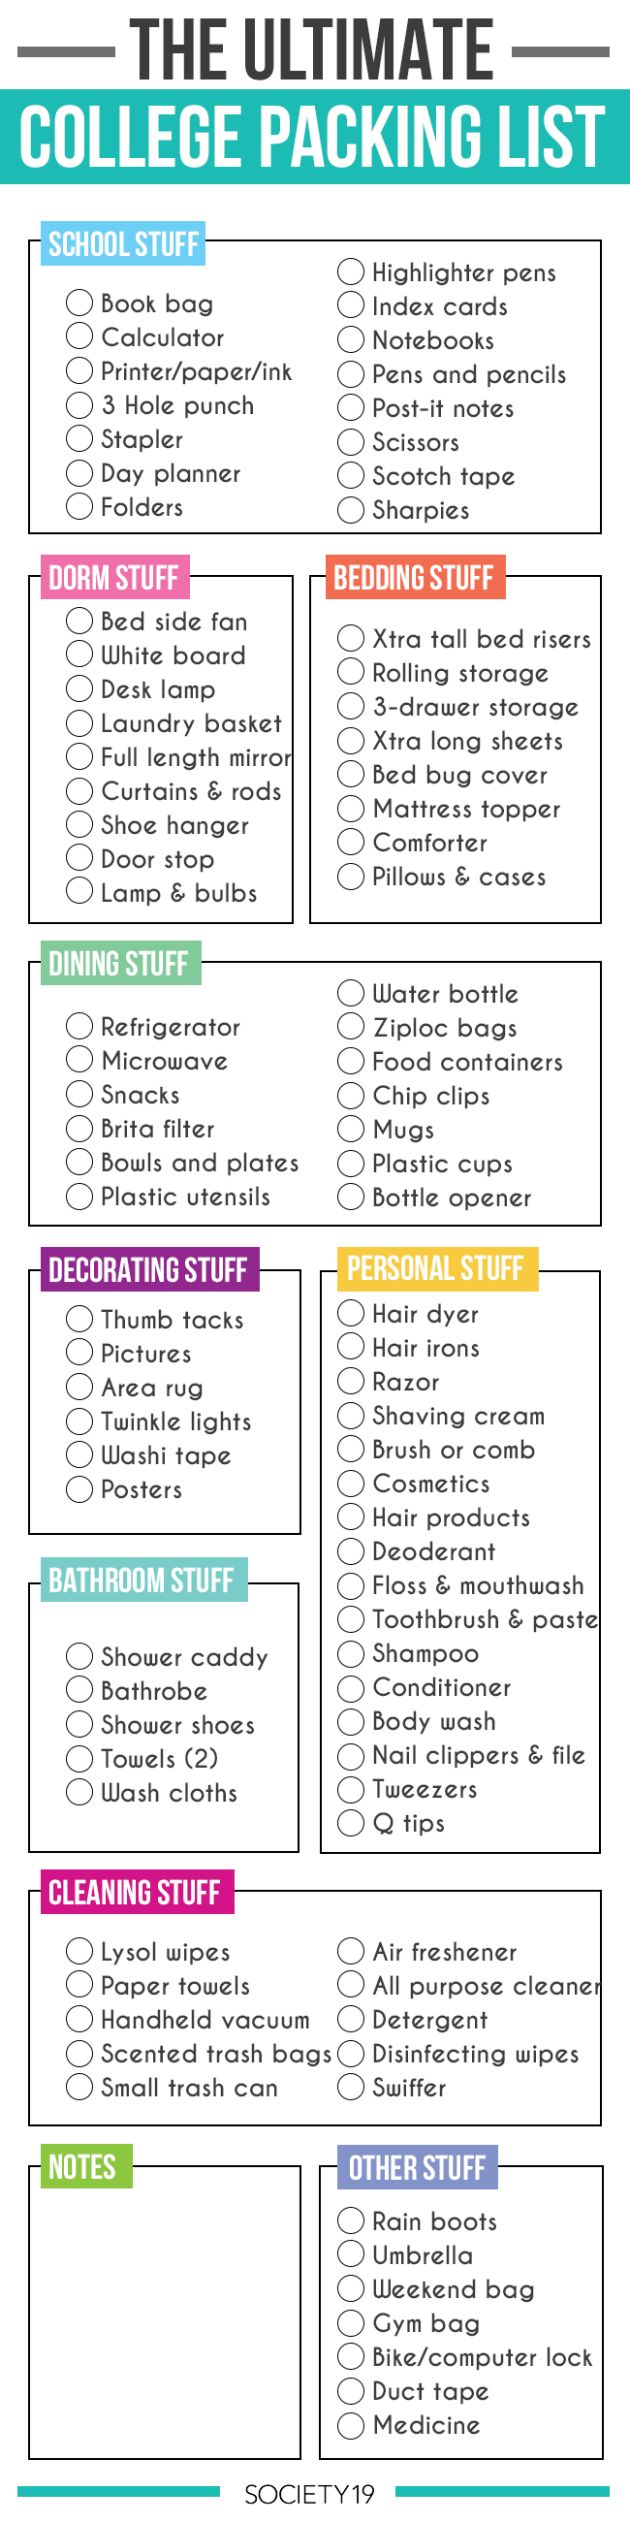 Packing is stressful, but nothing is more stressful than putting together a college packing list, especially for your freshman year. There is so much you just aren't sure of! It is inevitable that you will over-pack for your first semester of freshman...